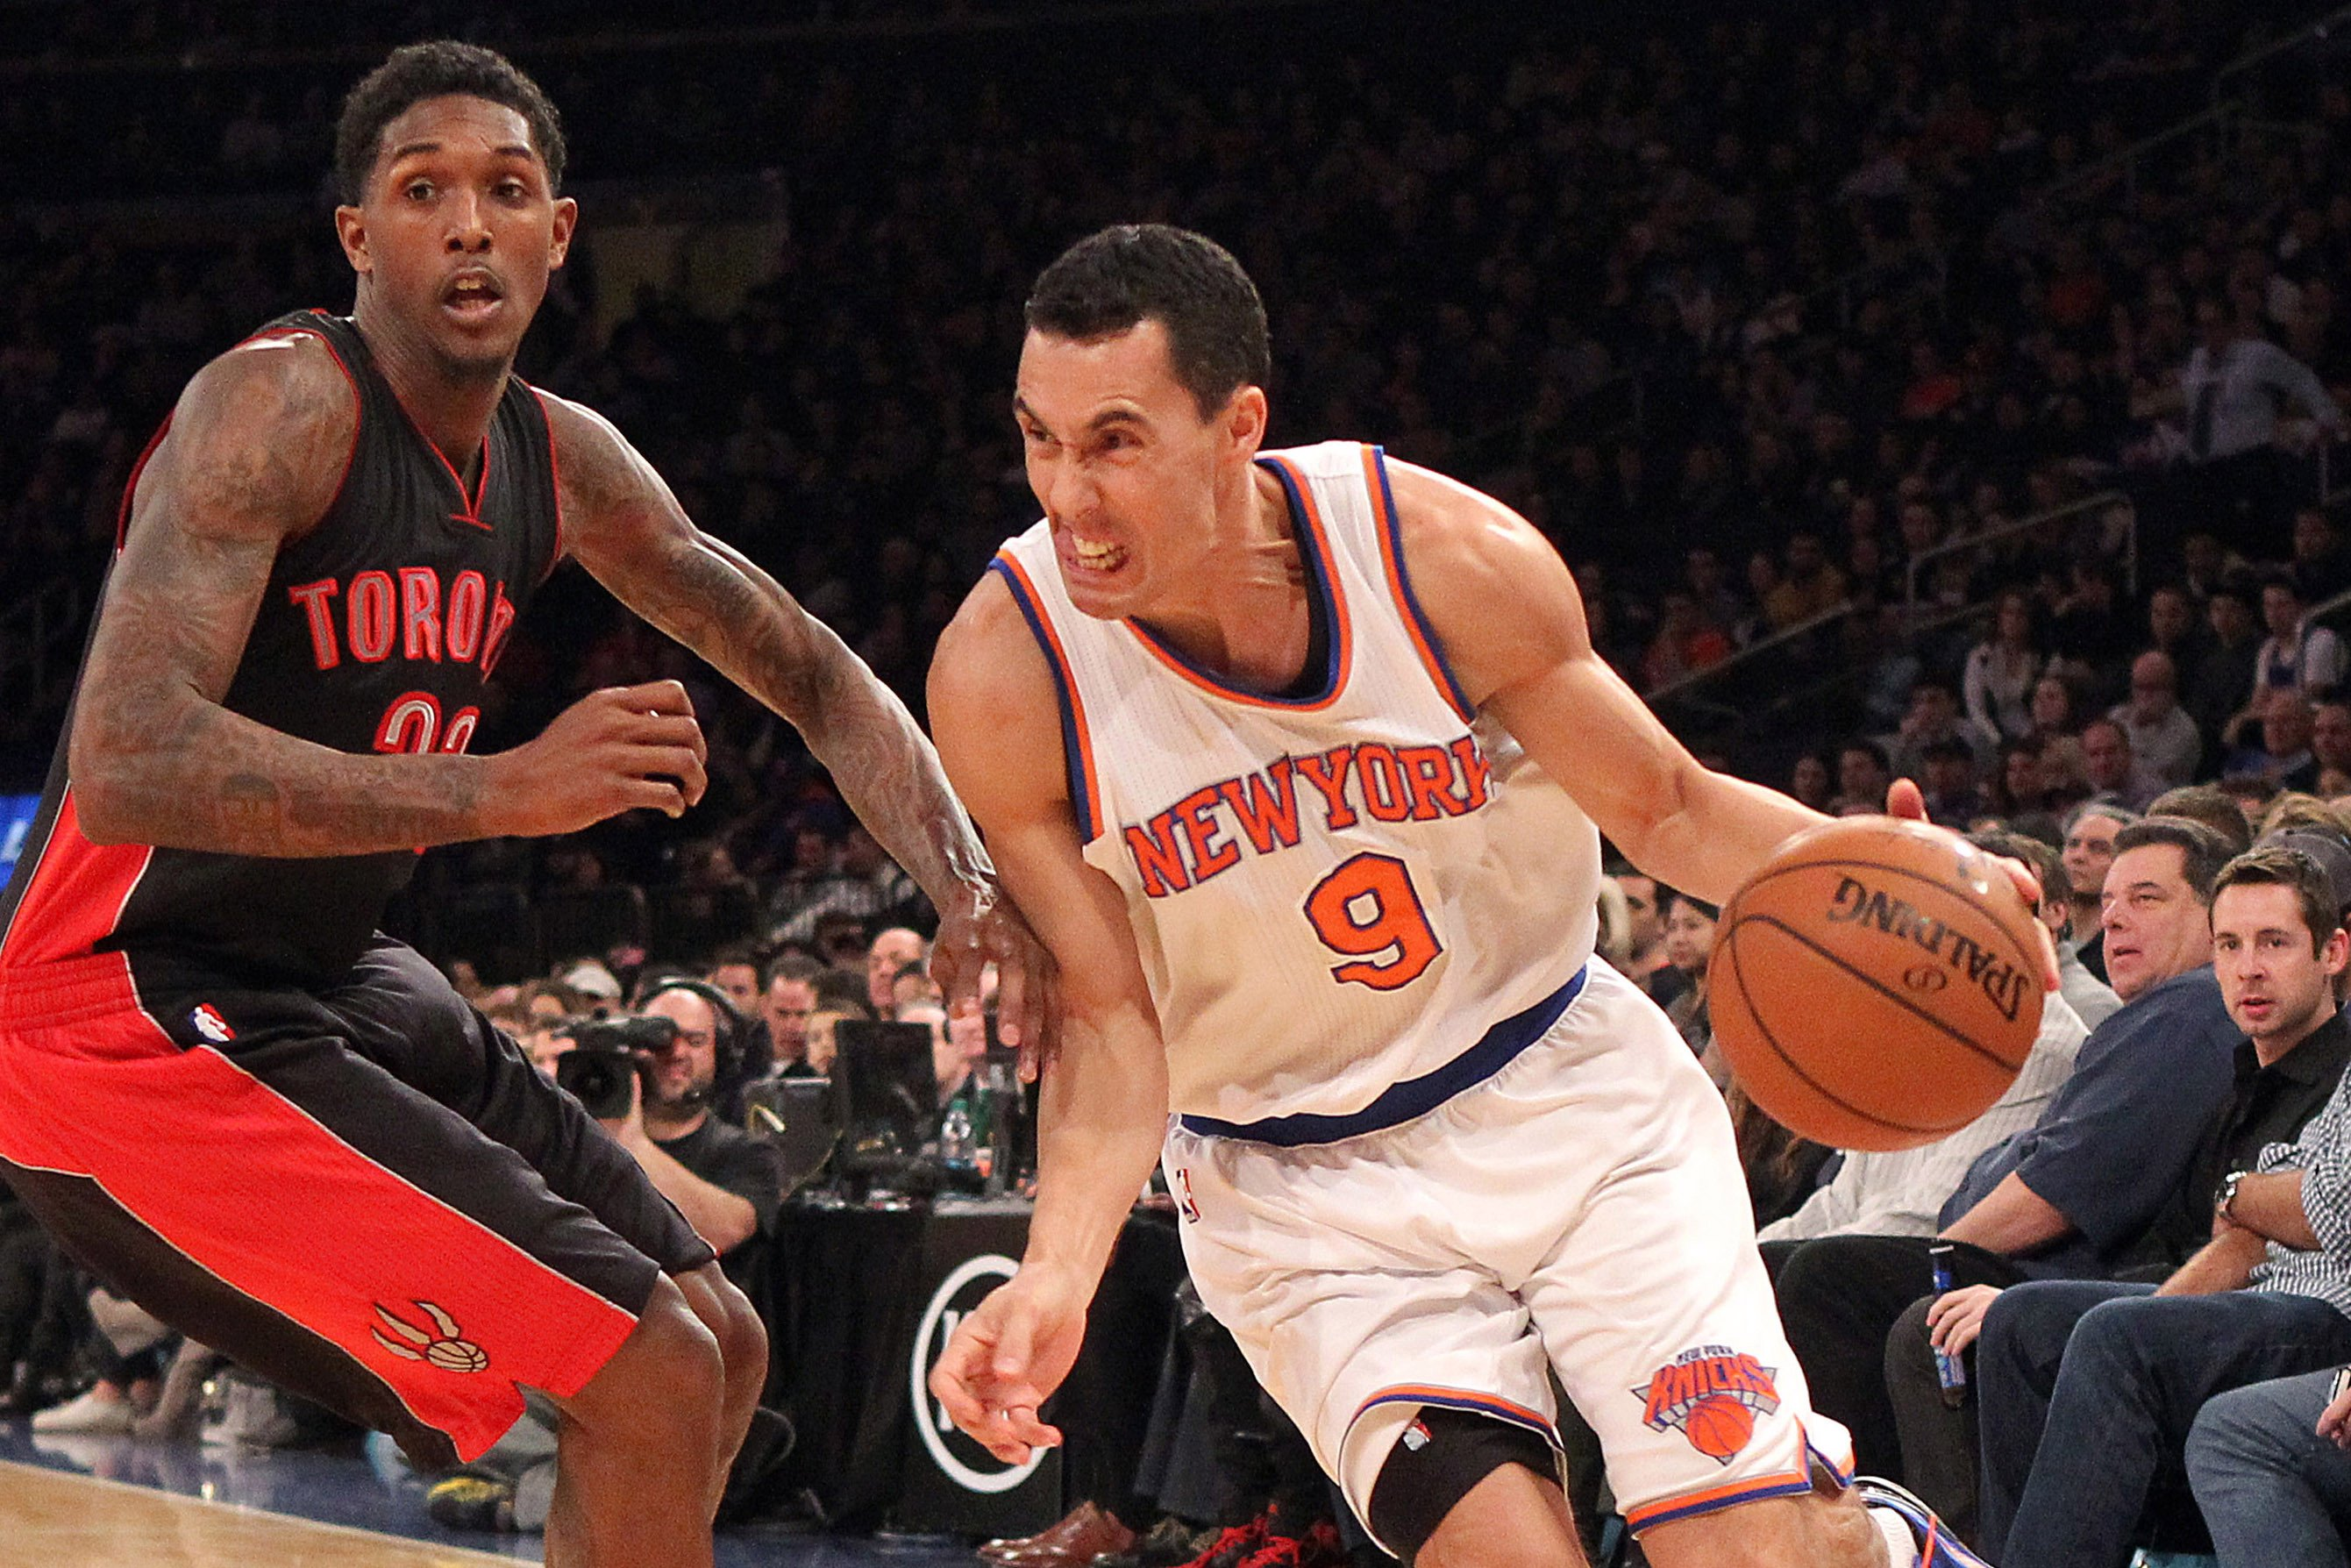 Knicks may bring back familiar face to mentor young guards